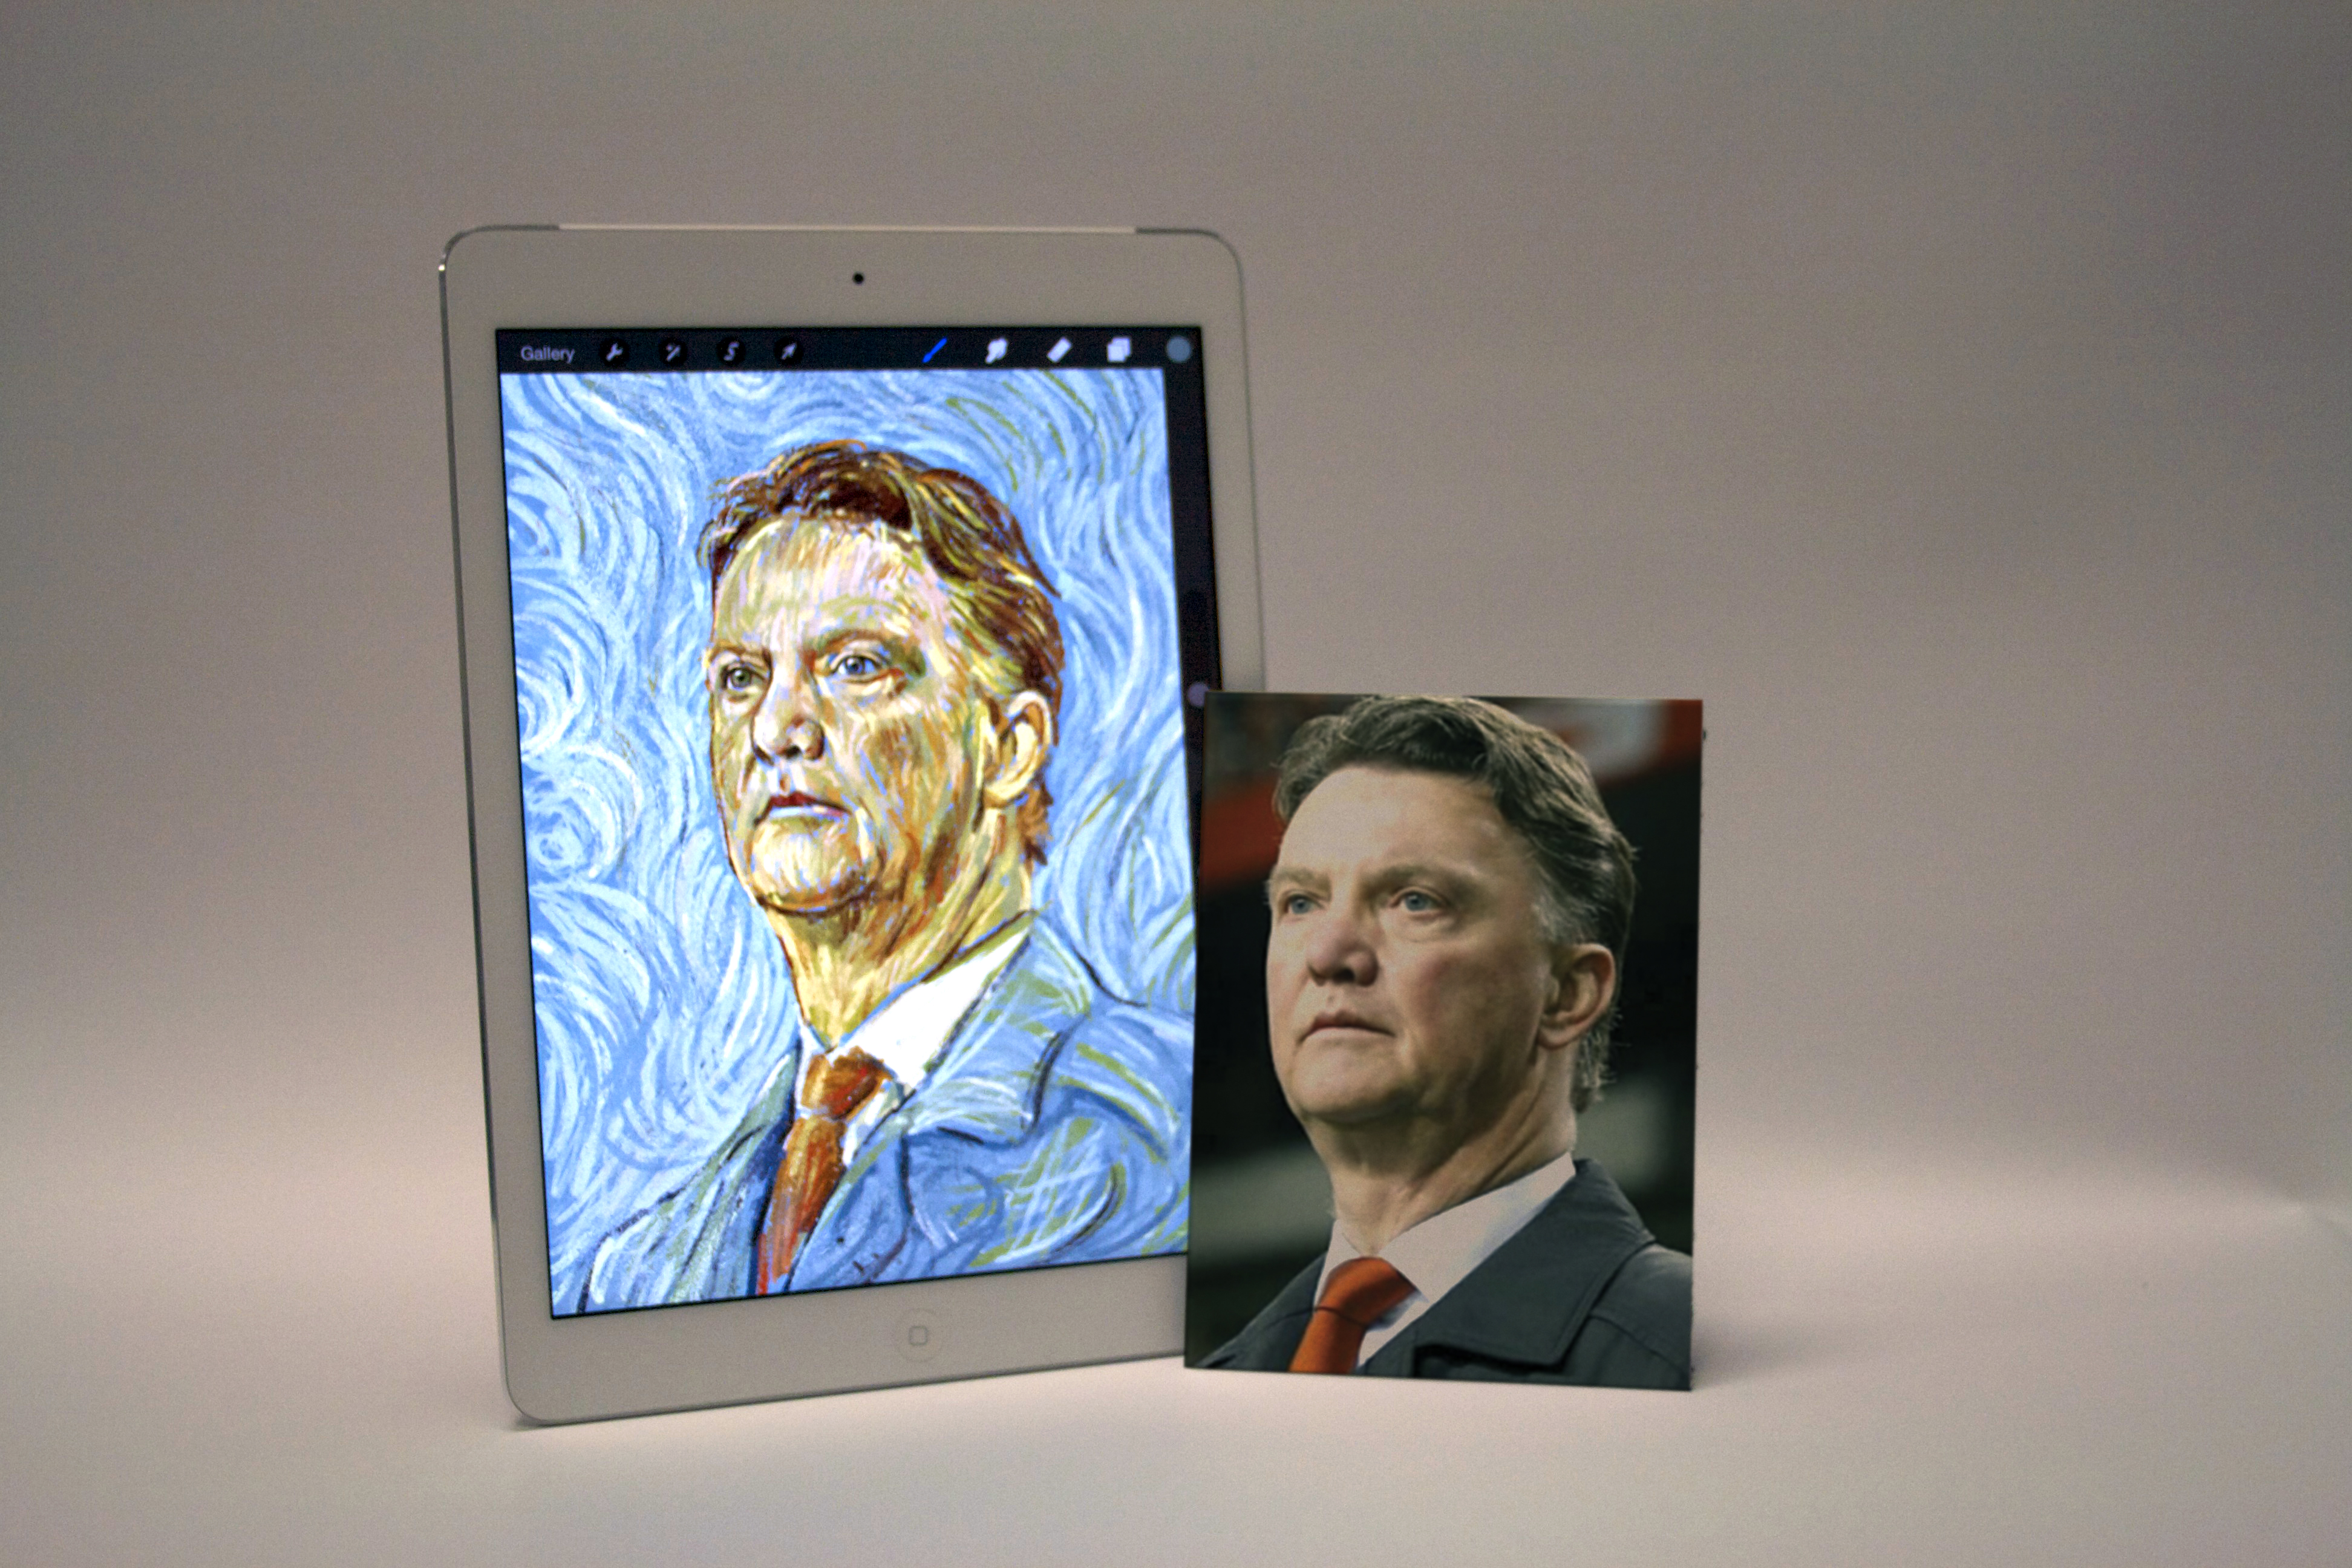 Watch artist incredibly recreate Manchester United and Southampton bosses Louis van Gaal and Ronald Koeman in the style of Dutch artists